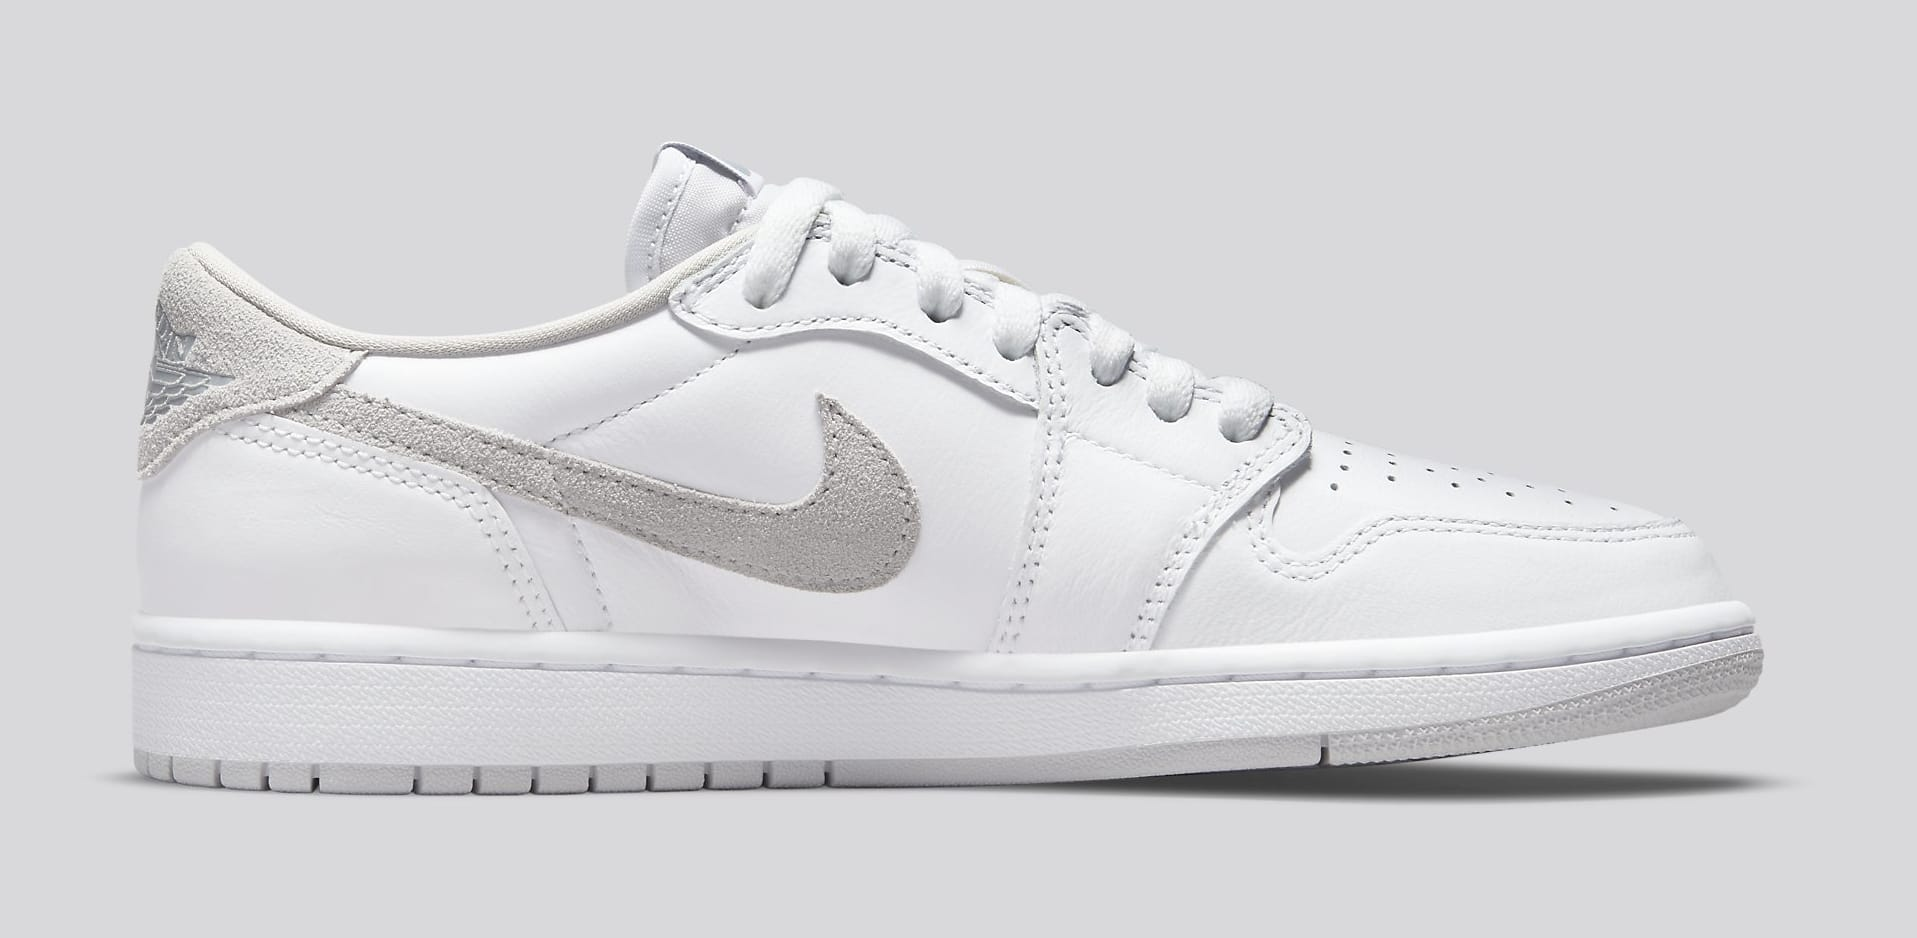 Air Jordan 1 Retro Low 'Neutral Grey' CZ0775-100 Medial